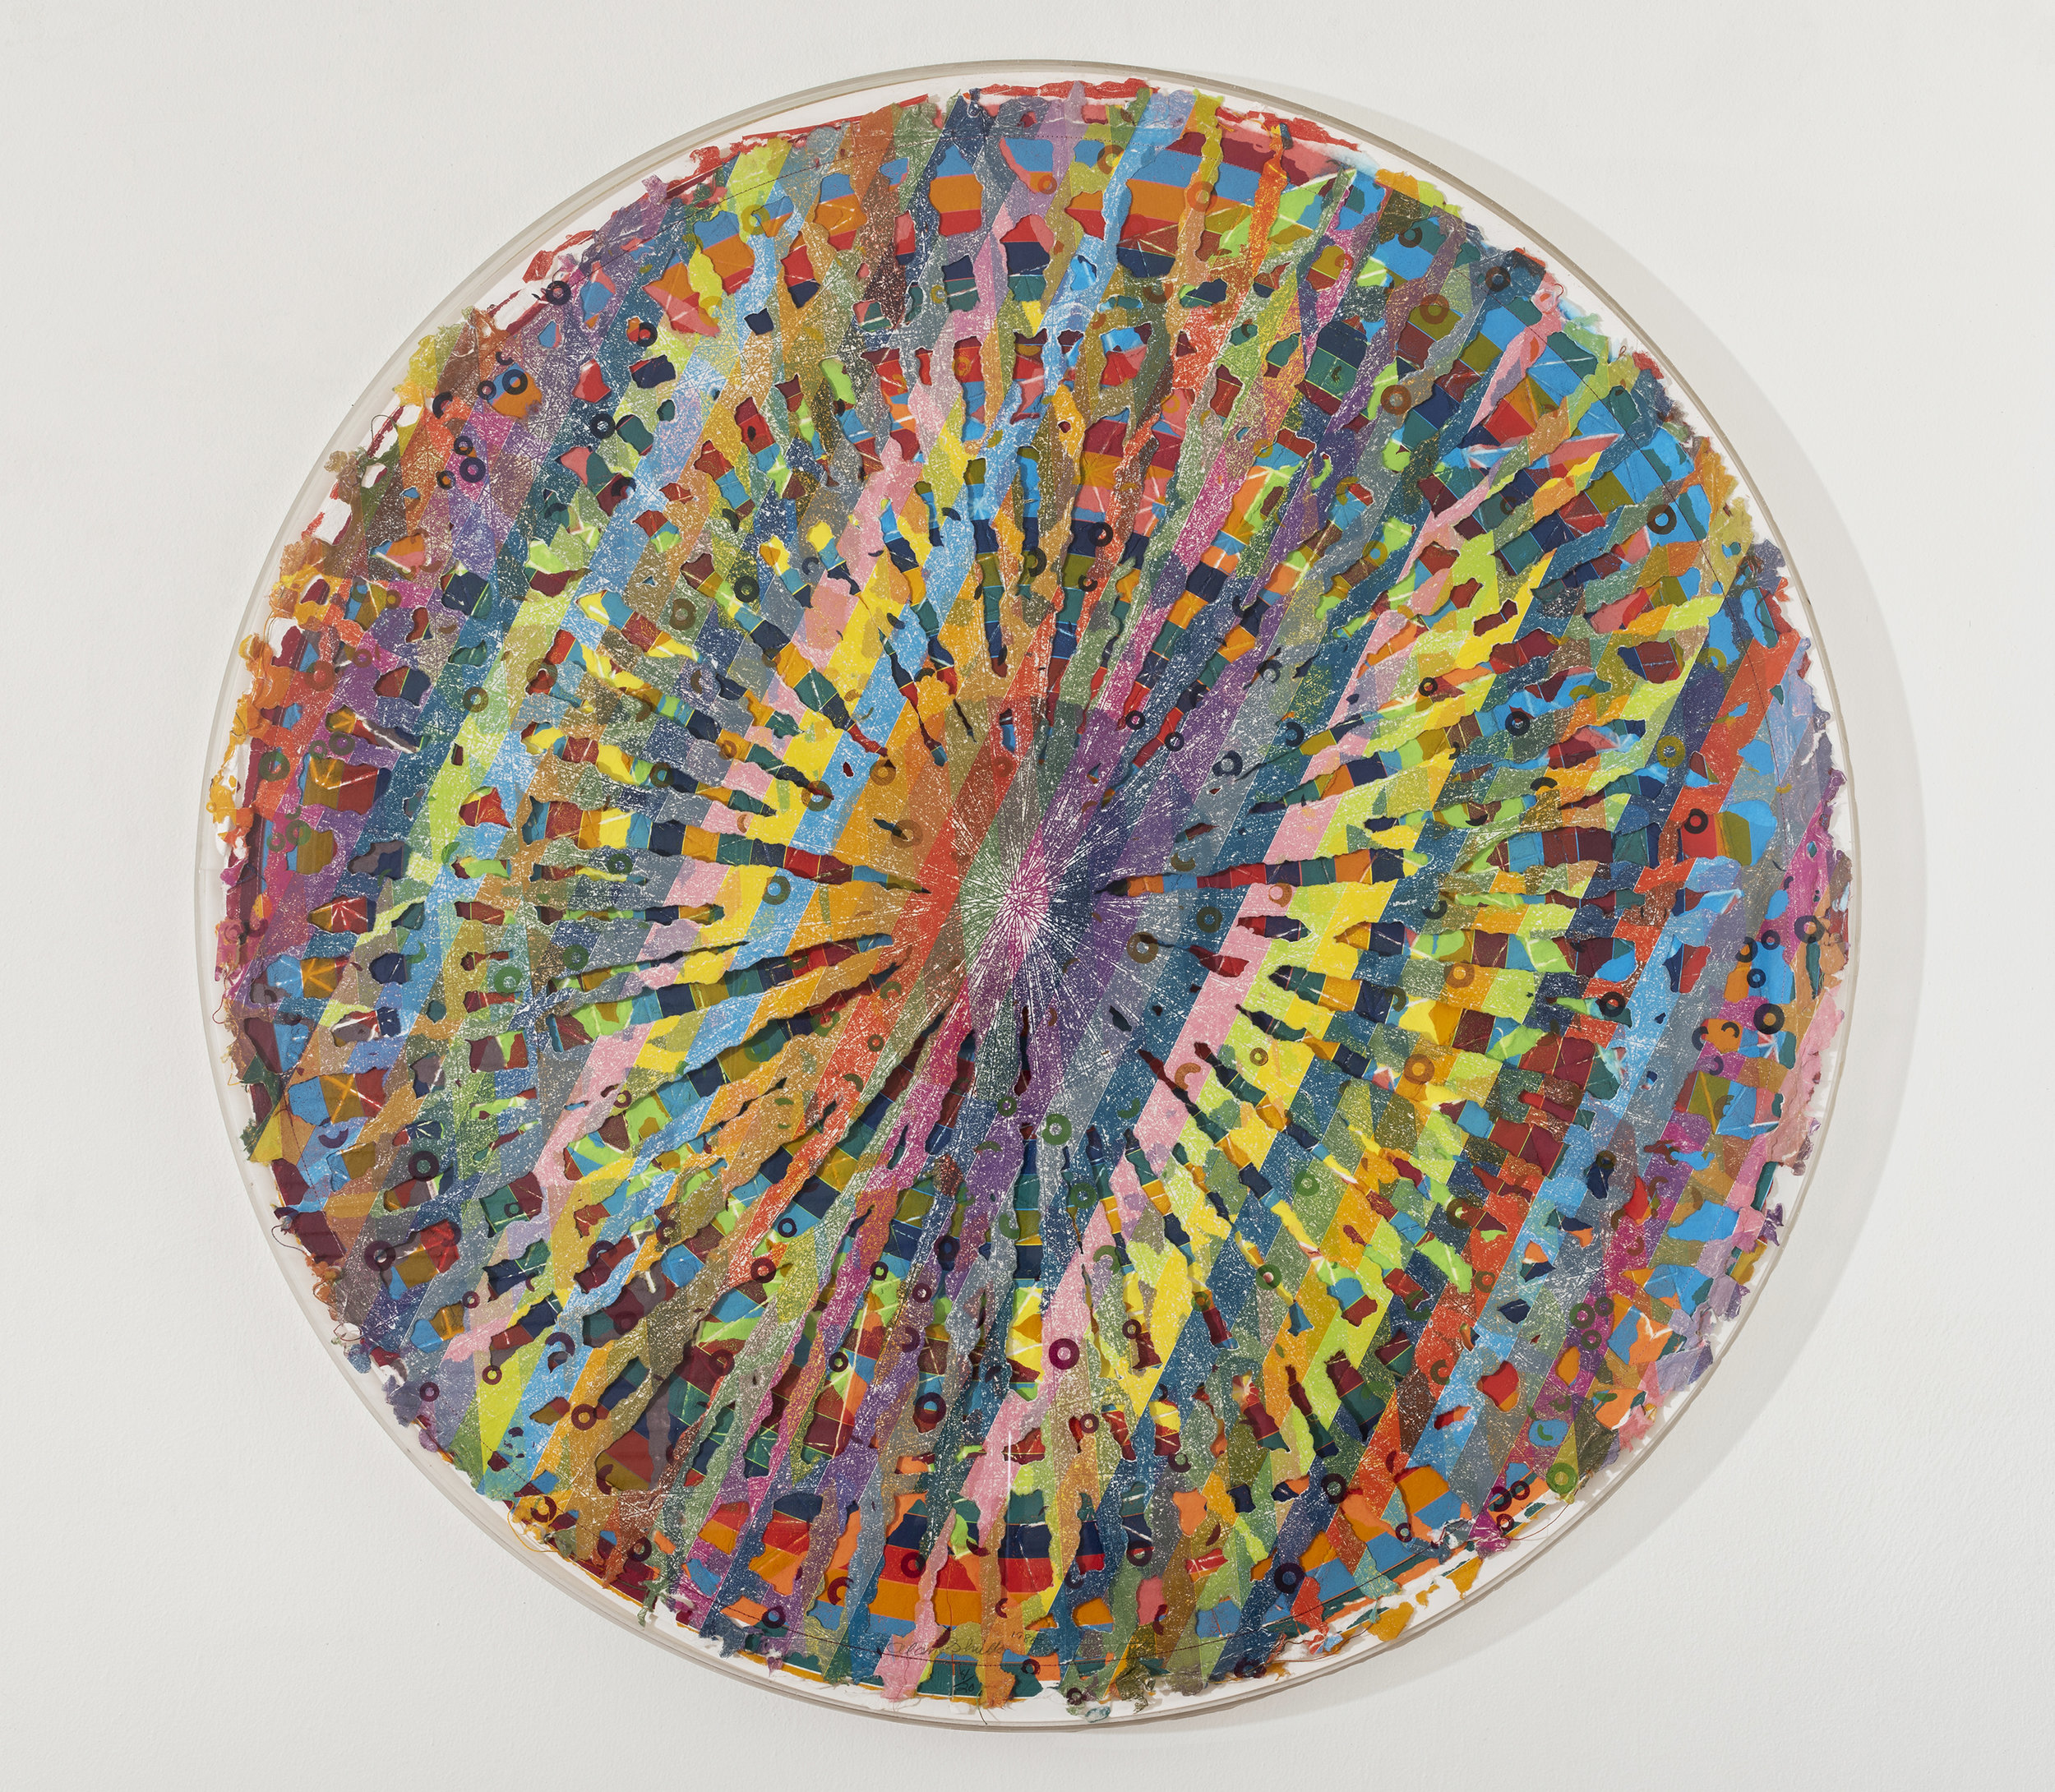 Alan Shields  Rain Dance Route  from  The Raggedy Circumnavigation Series     1985 Relief, woodcut, silkscreen, string, stitching, on handmade paper, two layers 47 inches diameter  Ed. 4/20